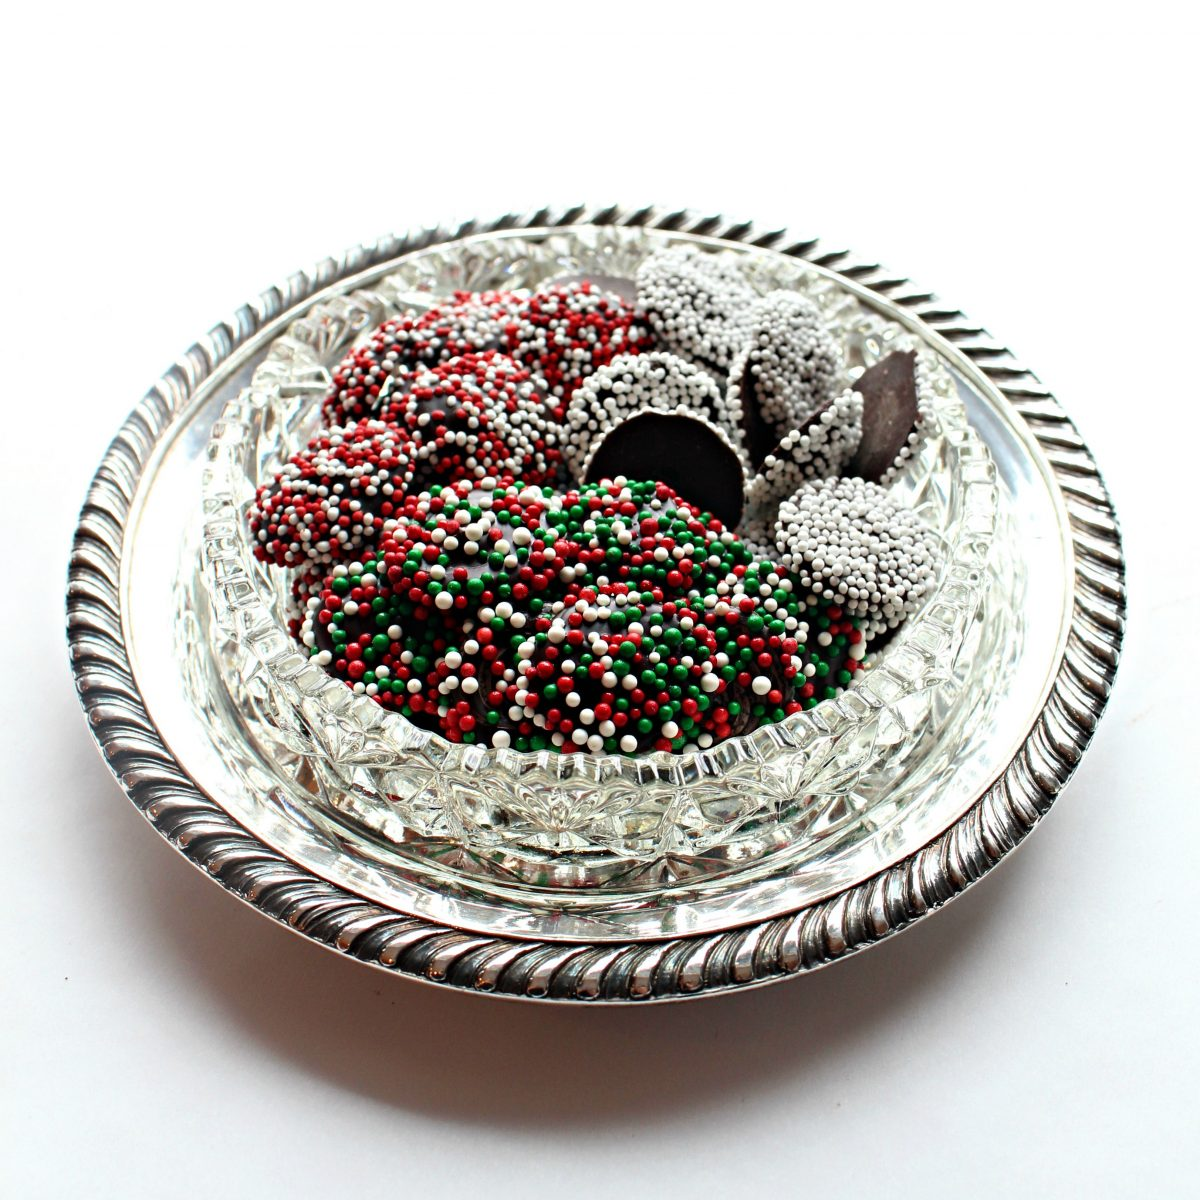 Candies in a silver and crystal candy dish.